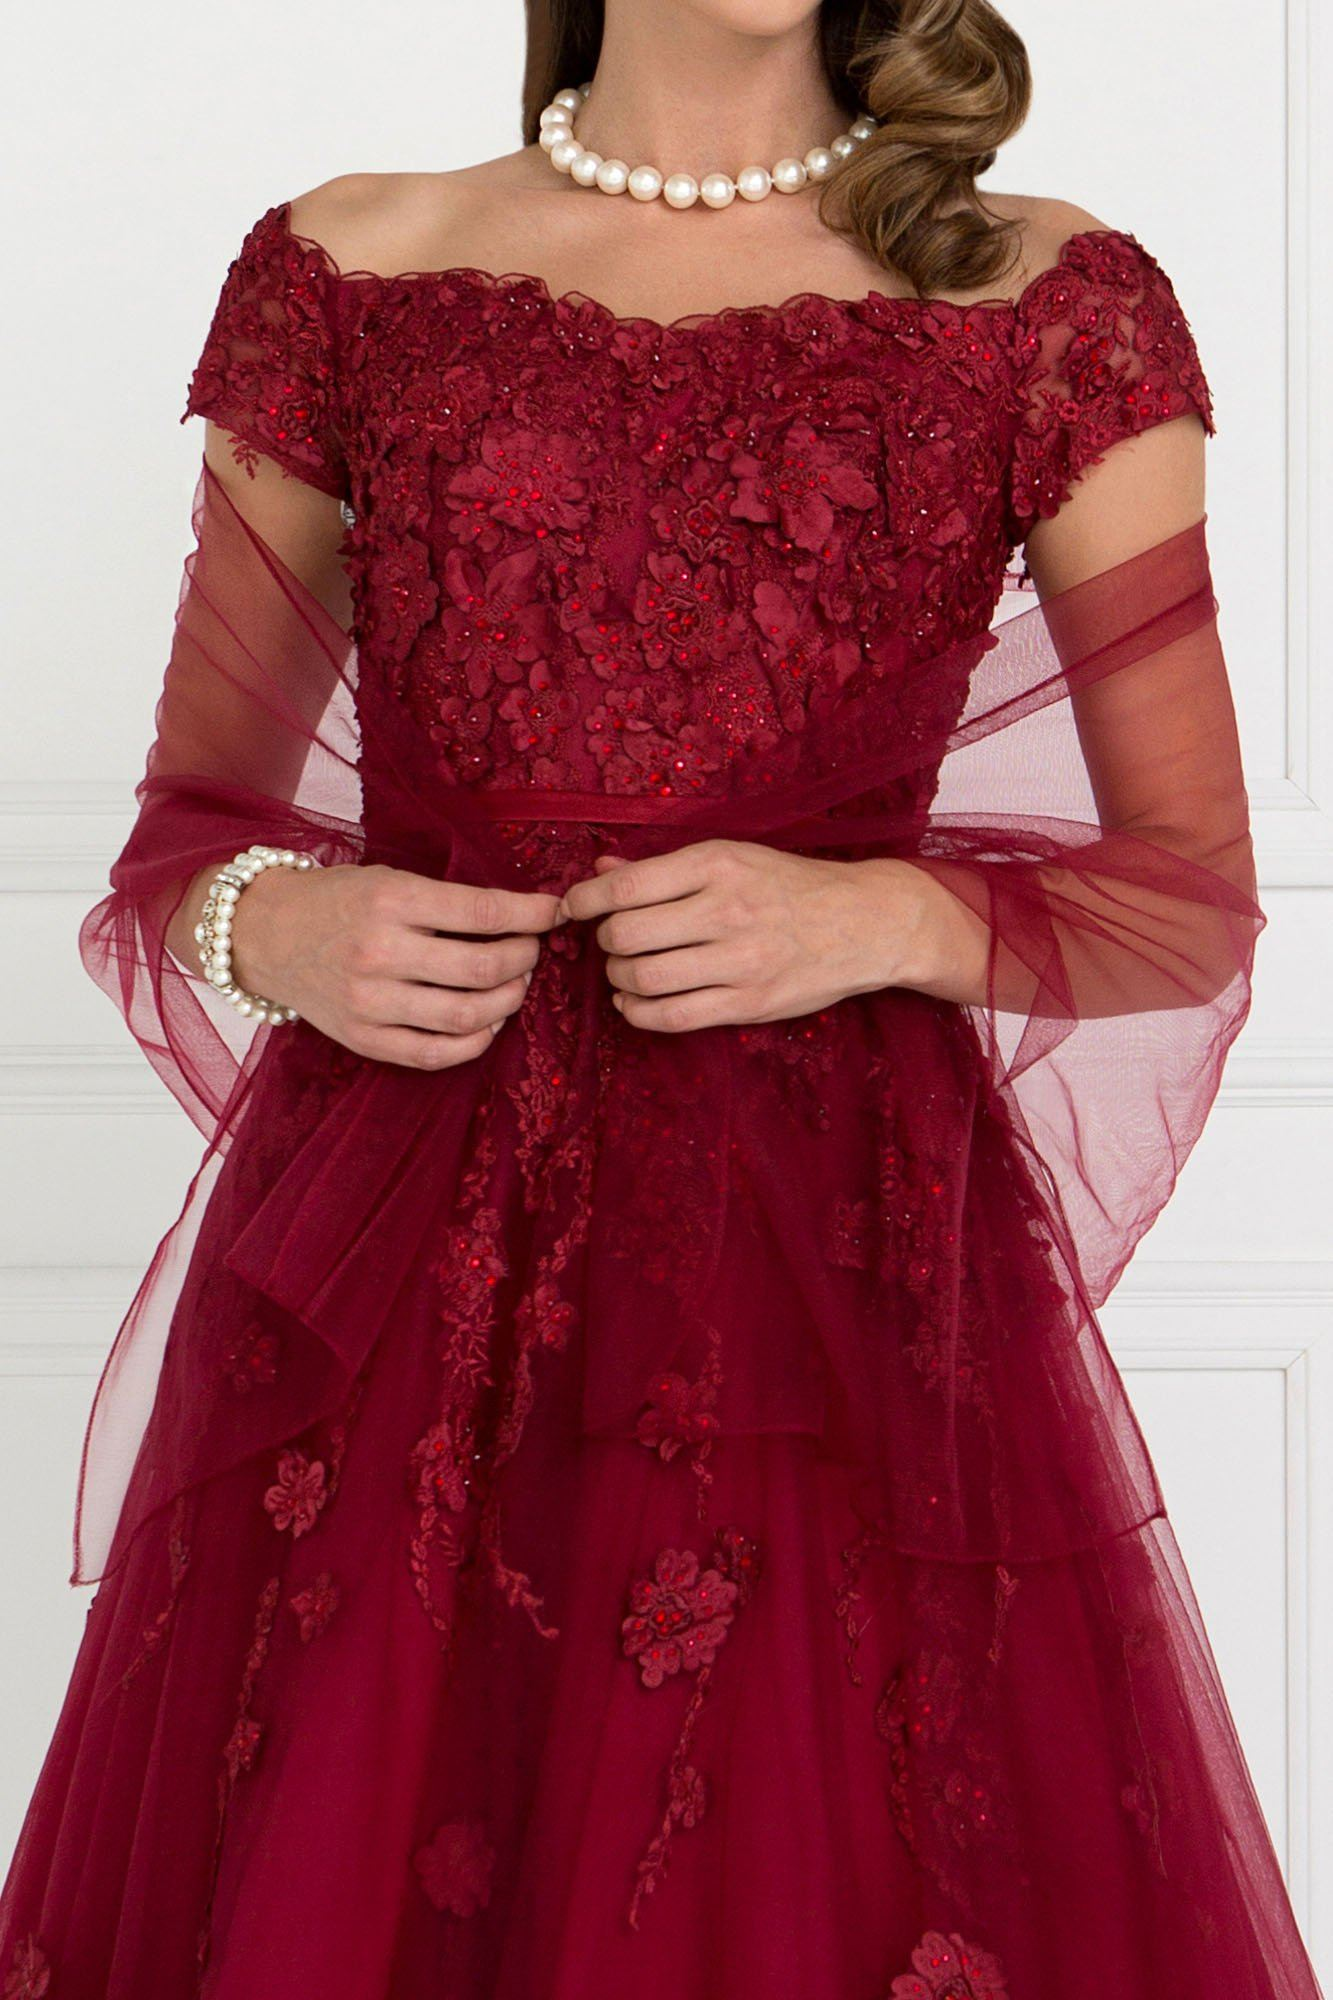 Off the shoulder burgundy ball gown dress gls 1516-Simply Fab Dress